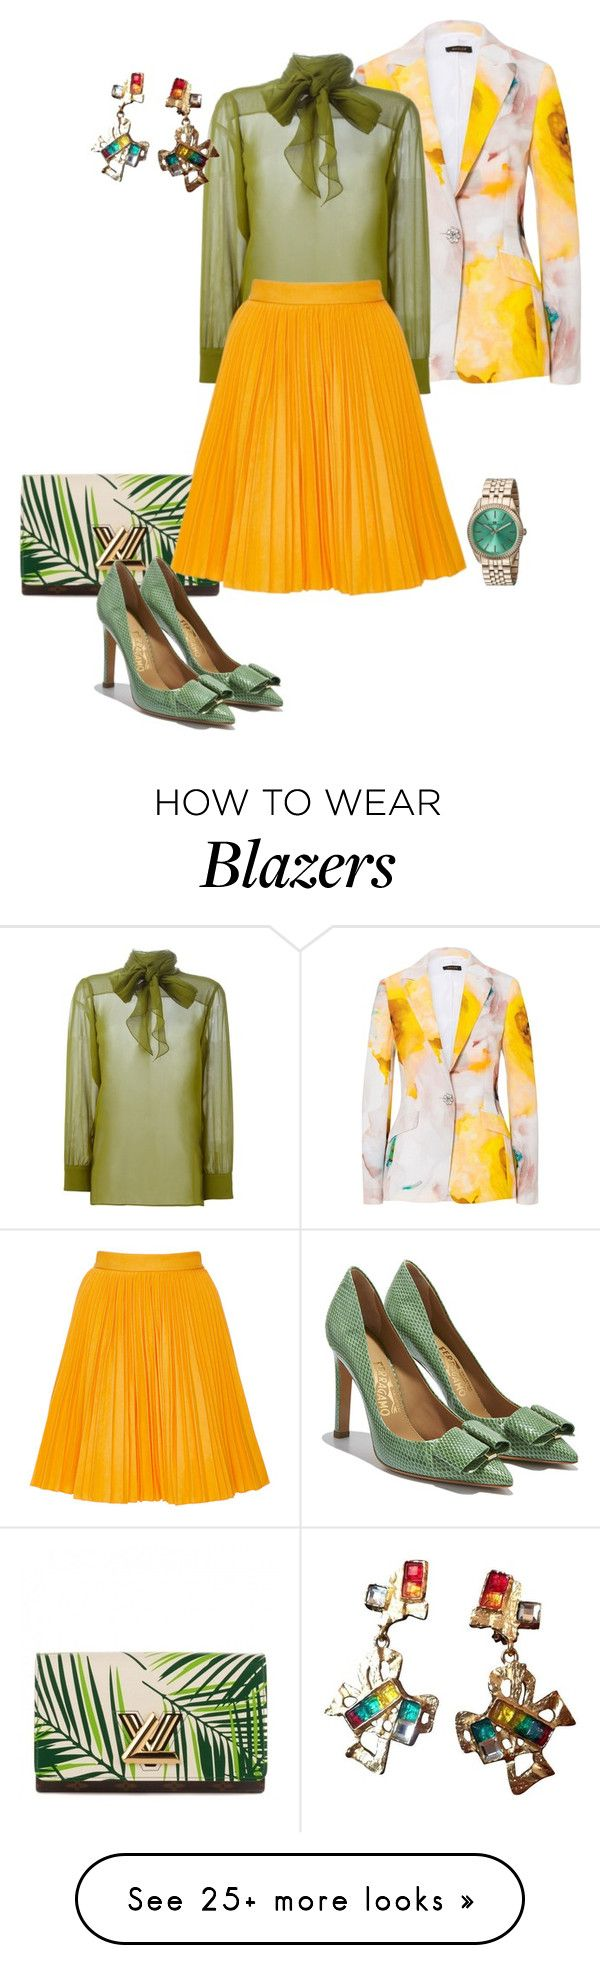 """Bold Colors For Spring!"" by eva-kouliaridou on Polyvore featuring moda, Gucci, Louis Vuitton, MSGM, Salvatore Ferragamo, Christian Lacroix y Oceanaut"